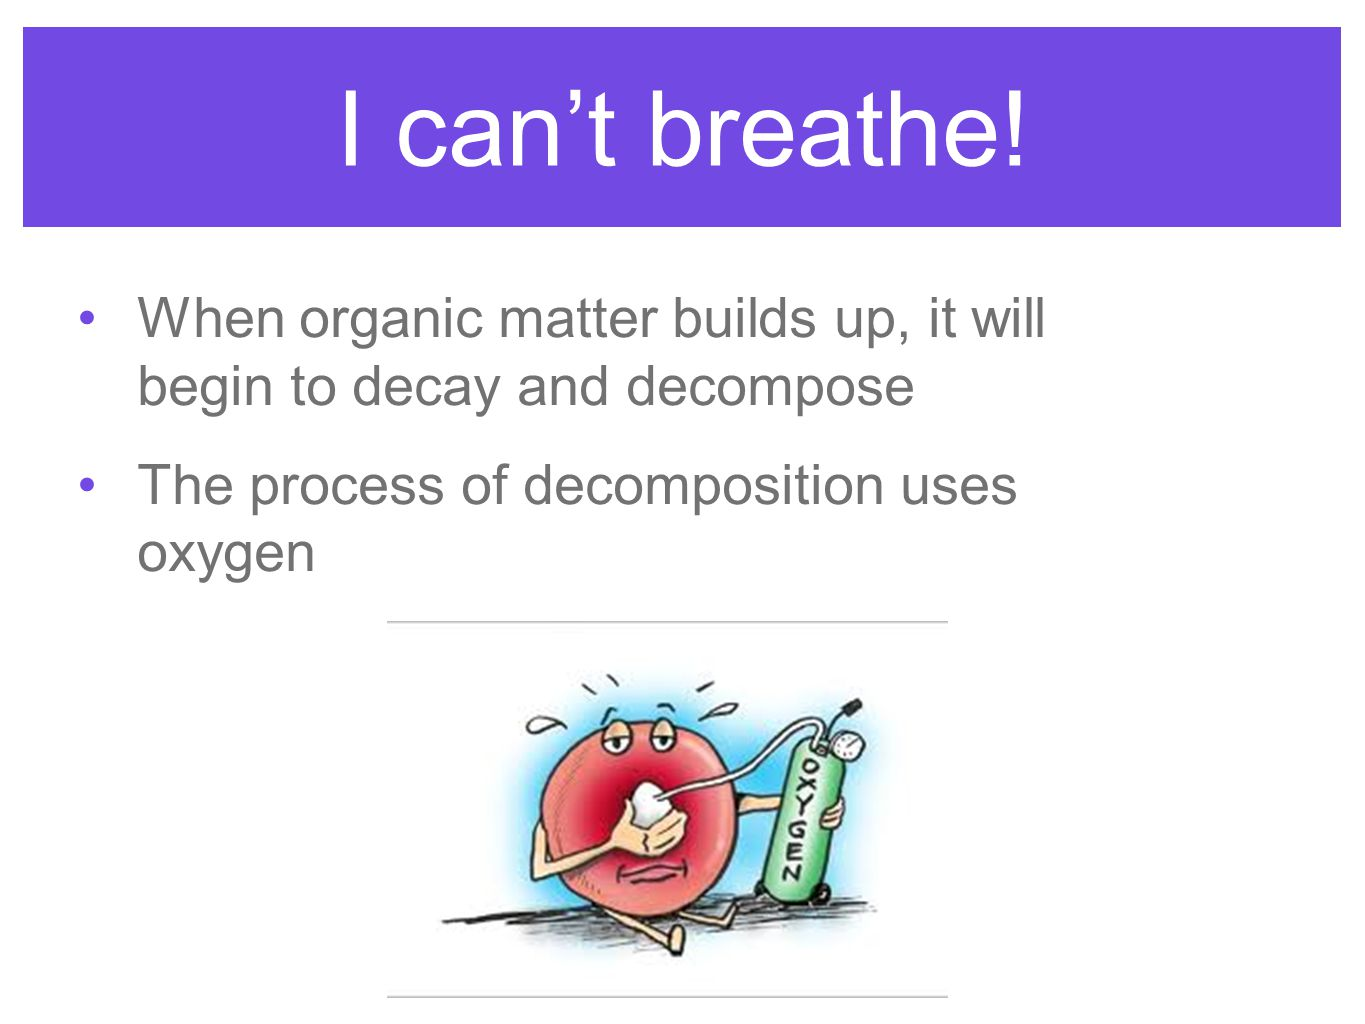 I can't breathe. When organic matter builds up, it will begin to decay and decompose.